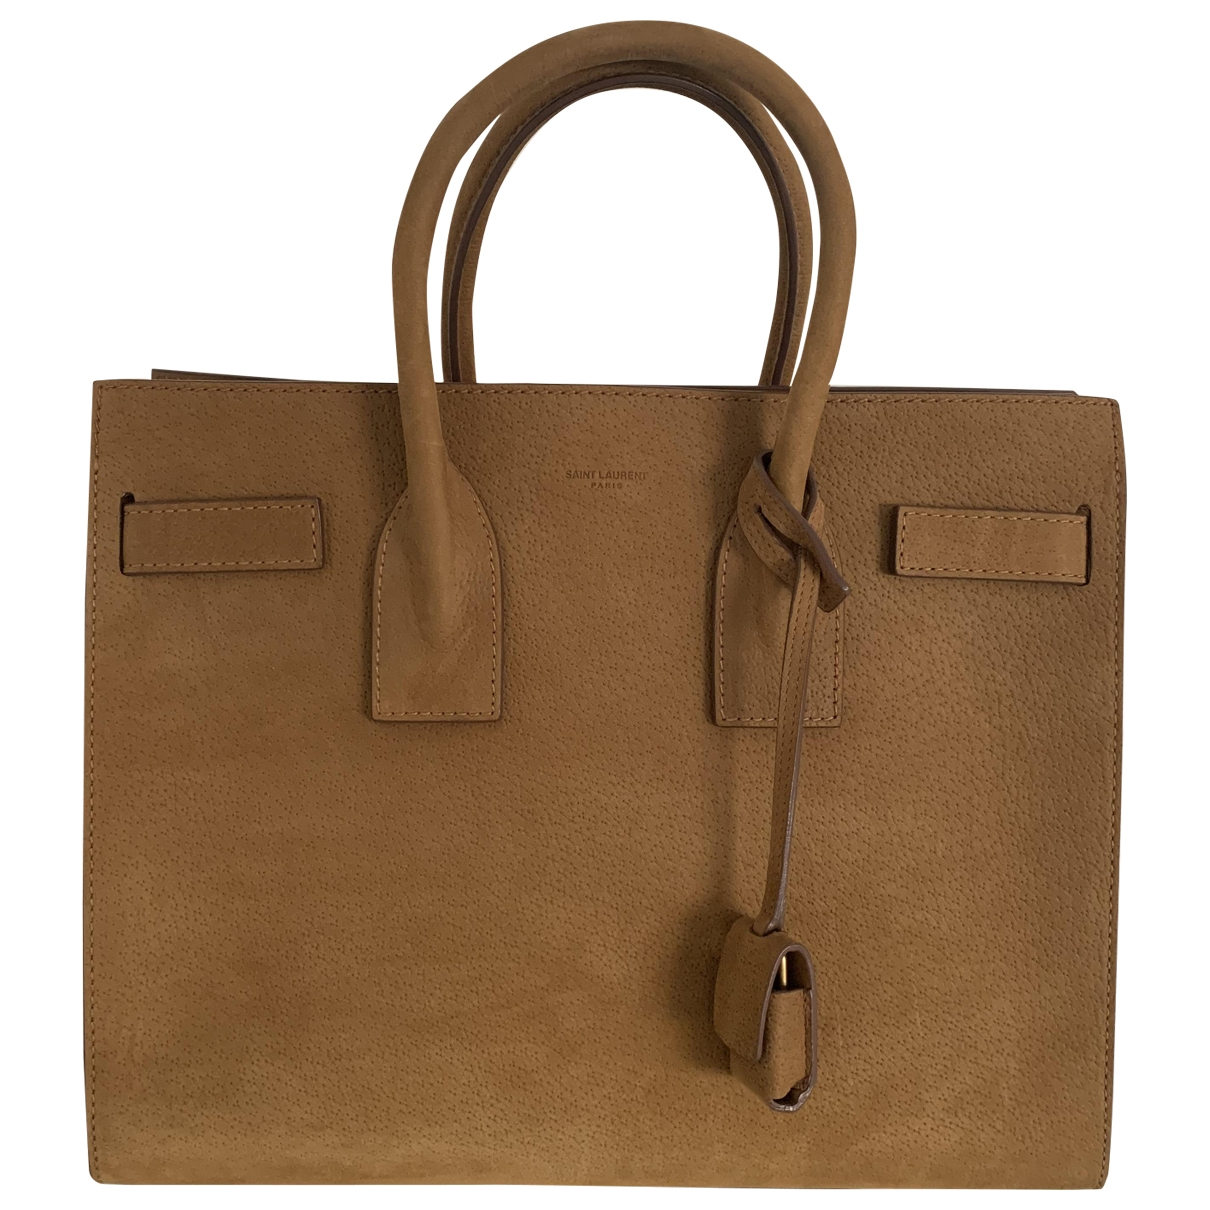 Saint Laurent Sac de Jour Brown Suede handbag for Women \N